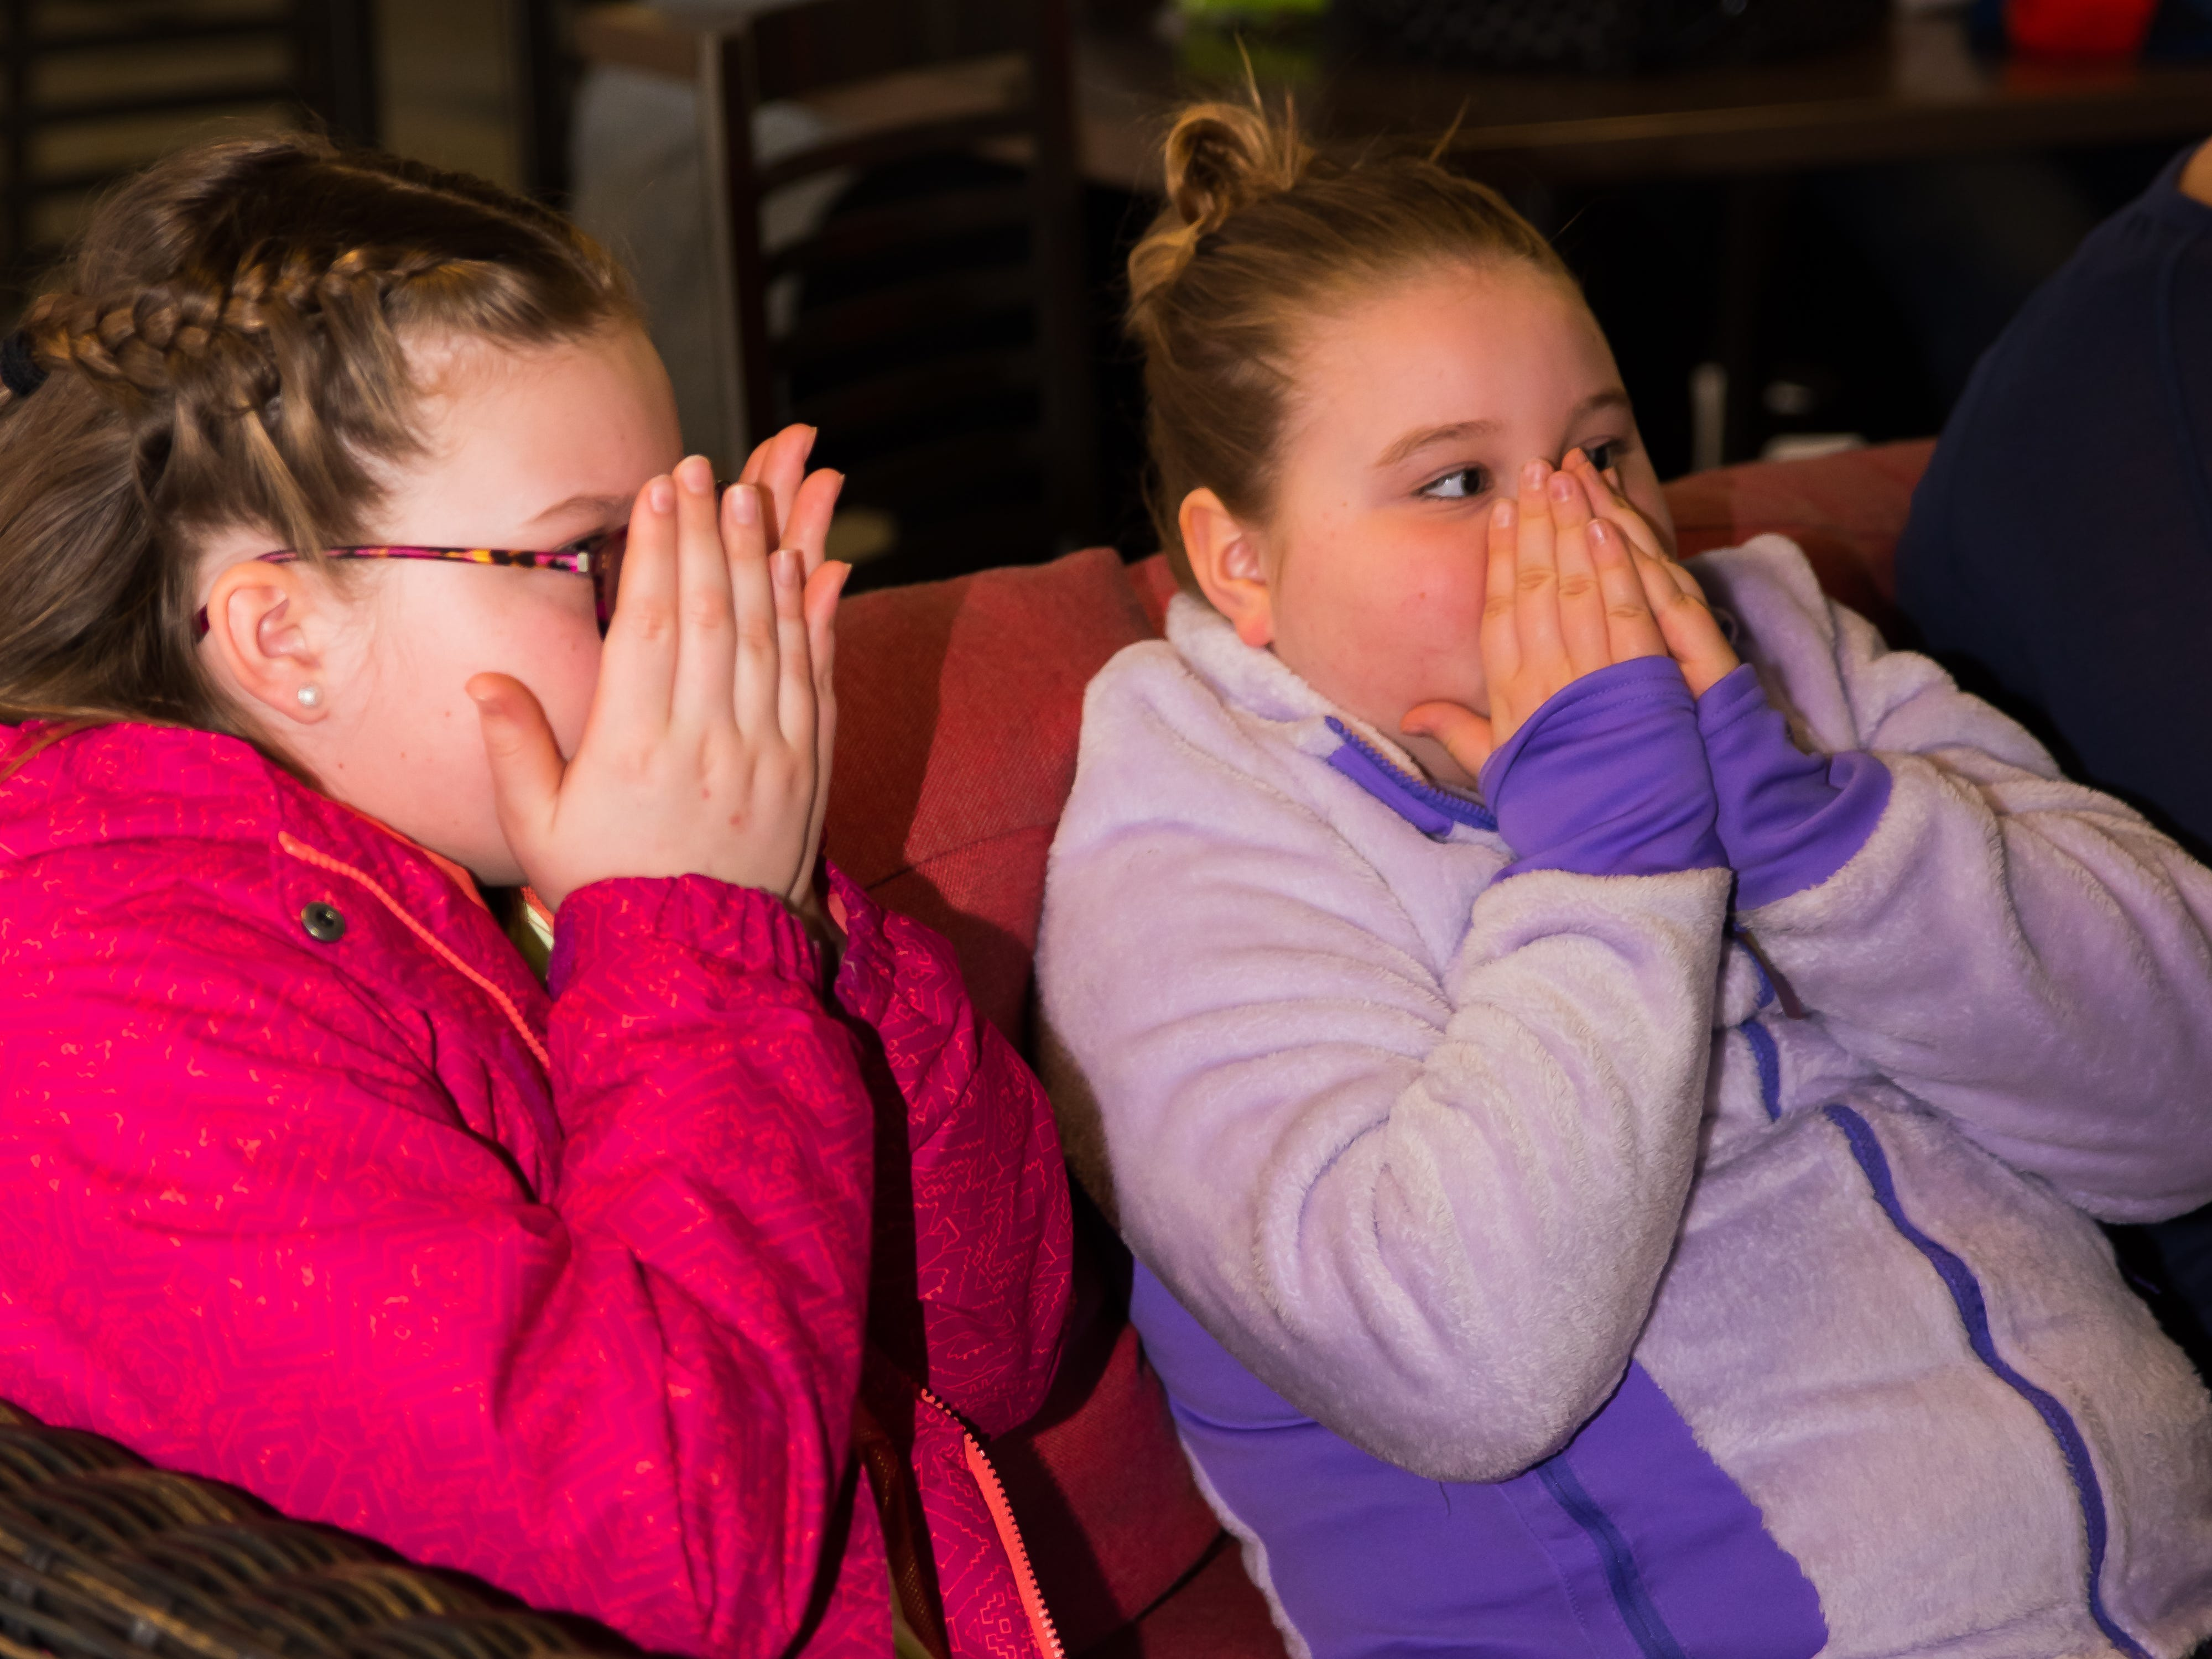 Ryen, 11, and Brinley McRoberts, 8, both of Altoona, participate in the experiments Wednesday, March 20, 2019, during a Science Center program at the Outlets of Des Moines in Altoona.